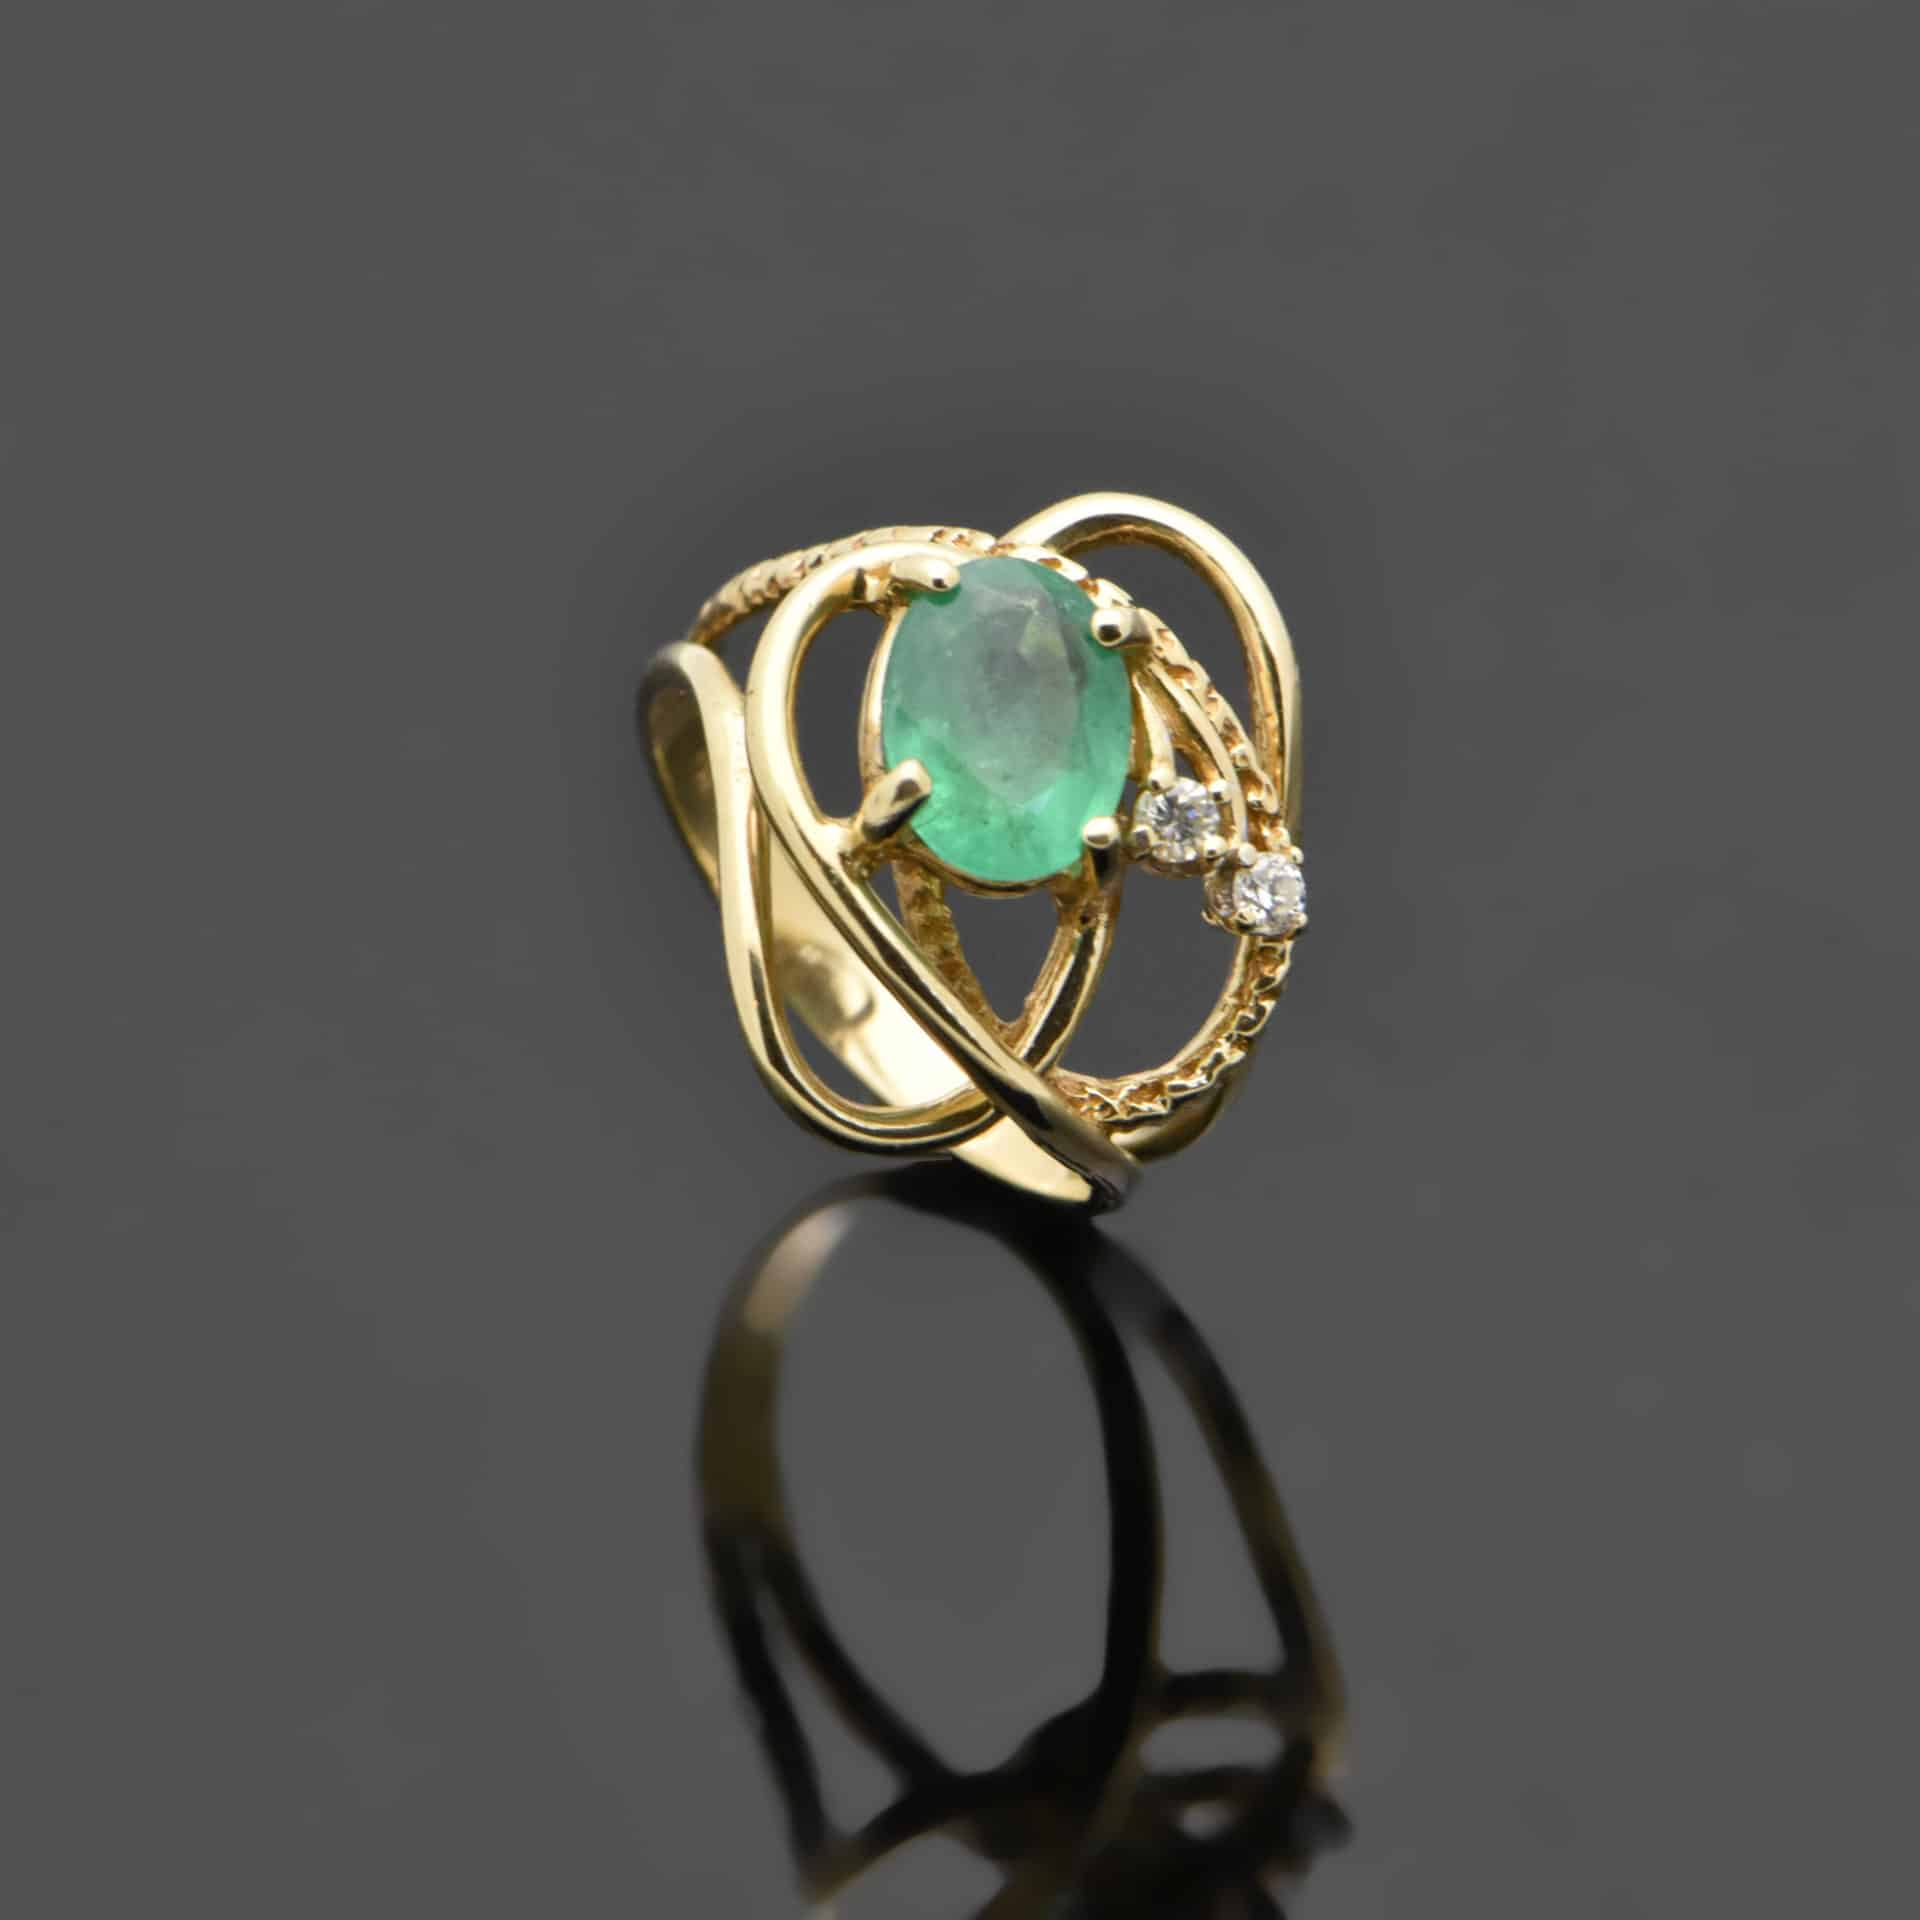 costagli rings valentina kite buy indicolite paolo products tourmaline gold ring emeral white shape an